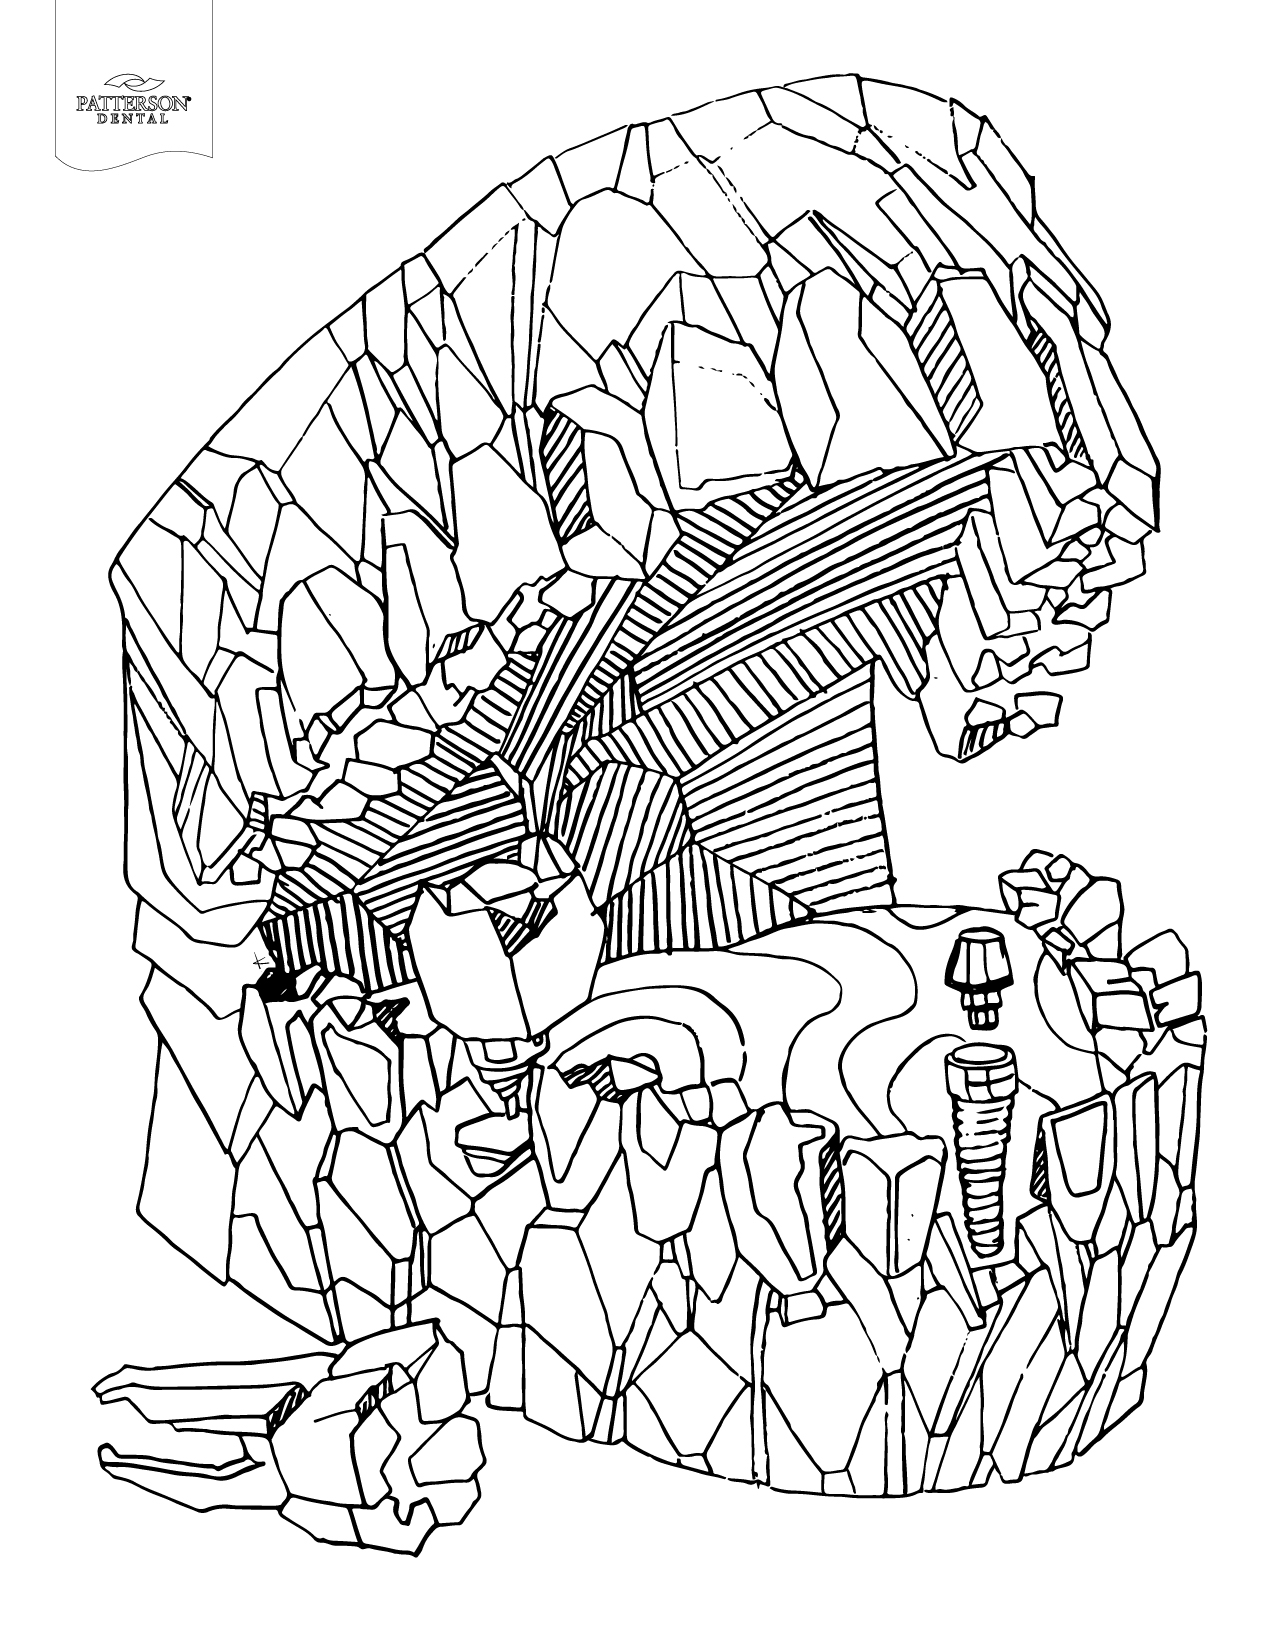 10 Toothy Adult Coloring Pages [Printable] - Off The Cusp